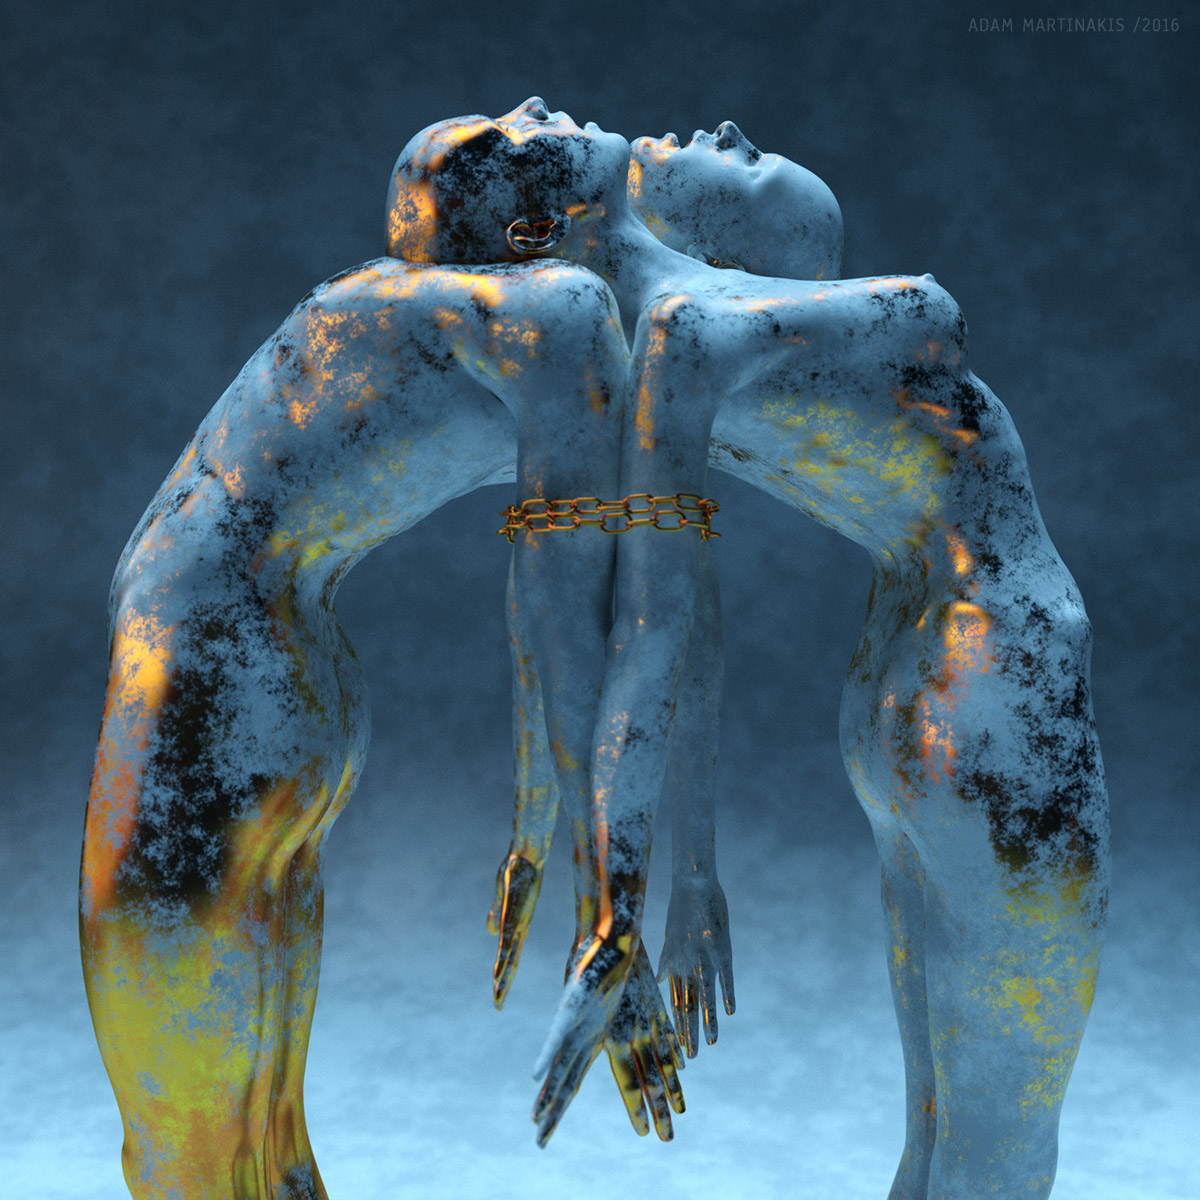 Adam Martinakis4